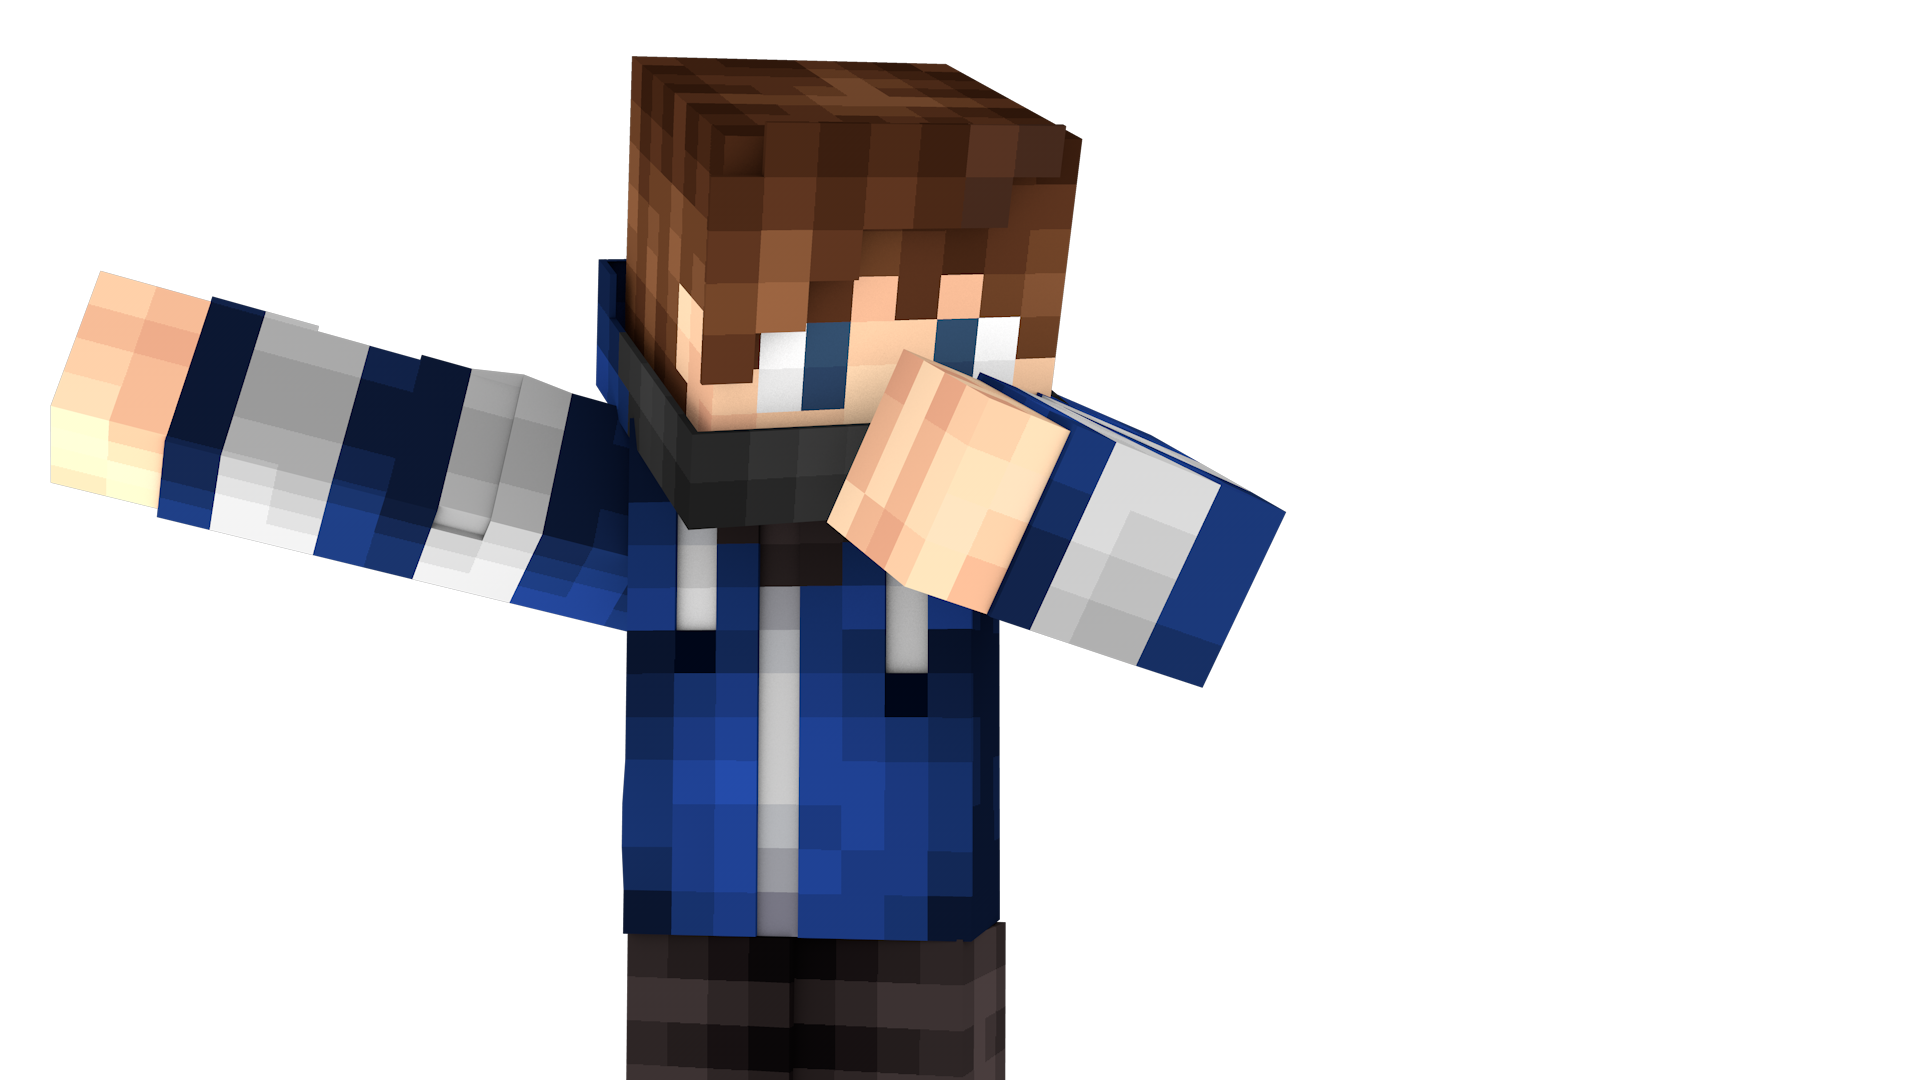 Minecraft dab png. Guildcraft network cracked server